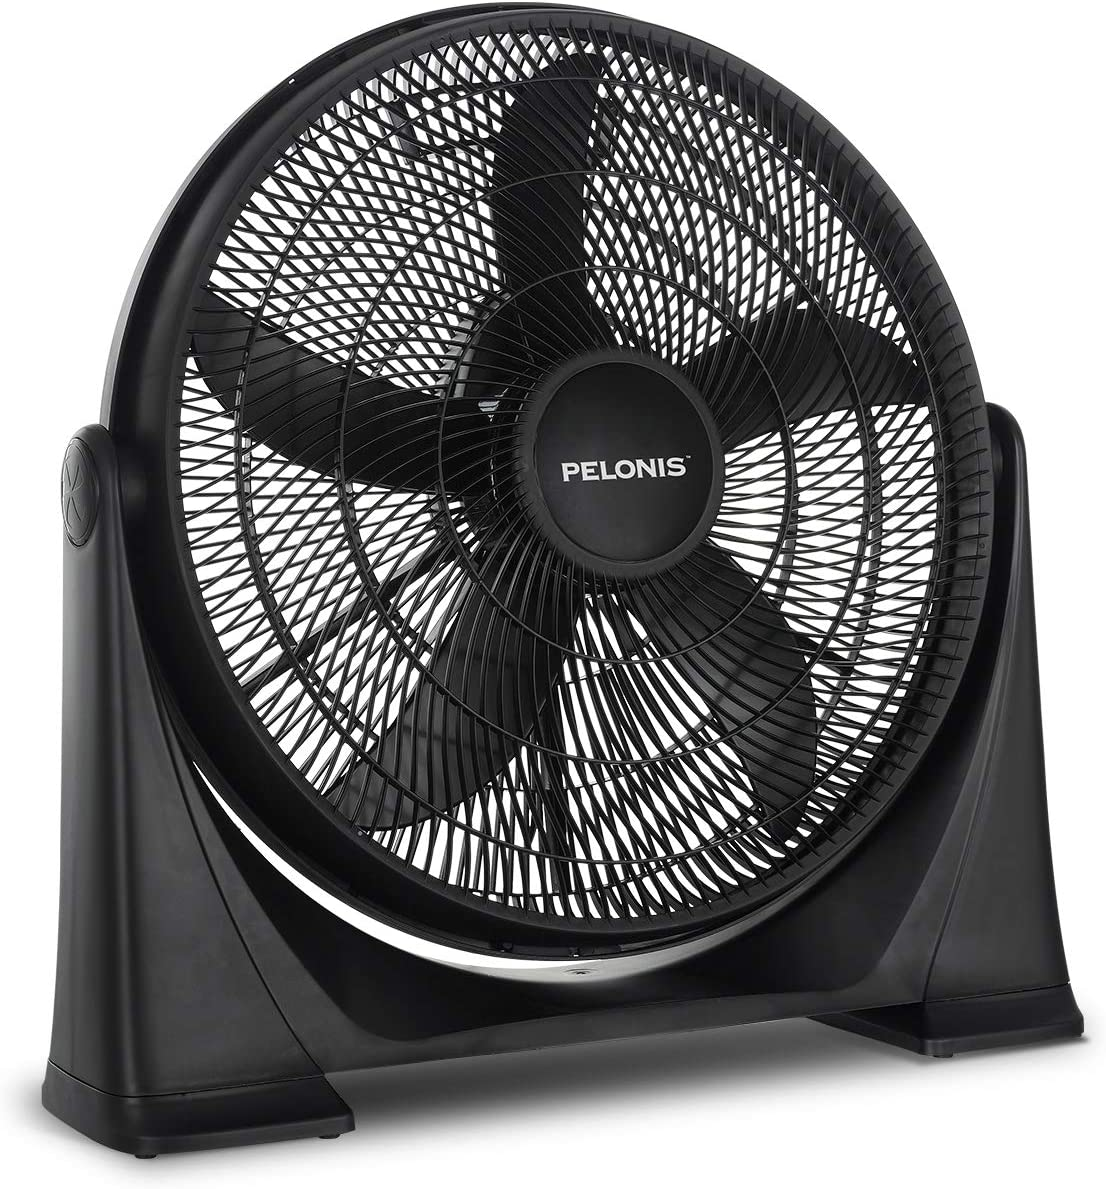 Pelonis 20-Inch 3-Speed Air Circulator with Adjustable Fan Head, Wall Mounted Optional, FB50-17H, 20 Inch Box, Black